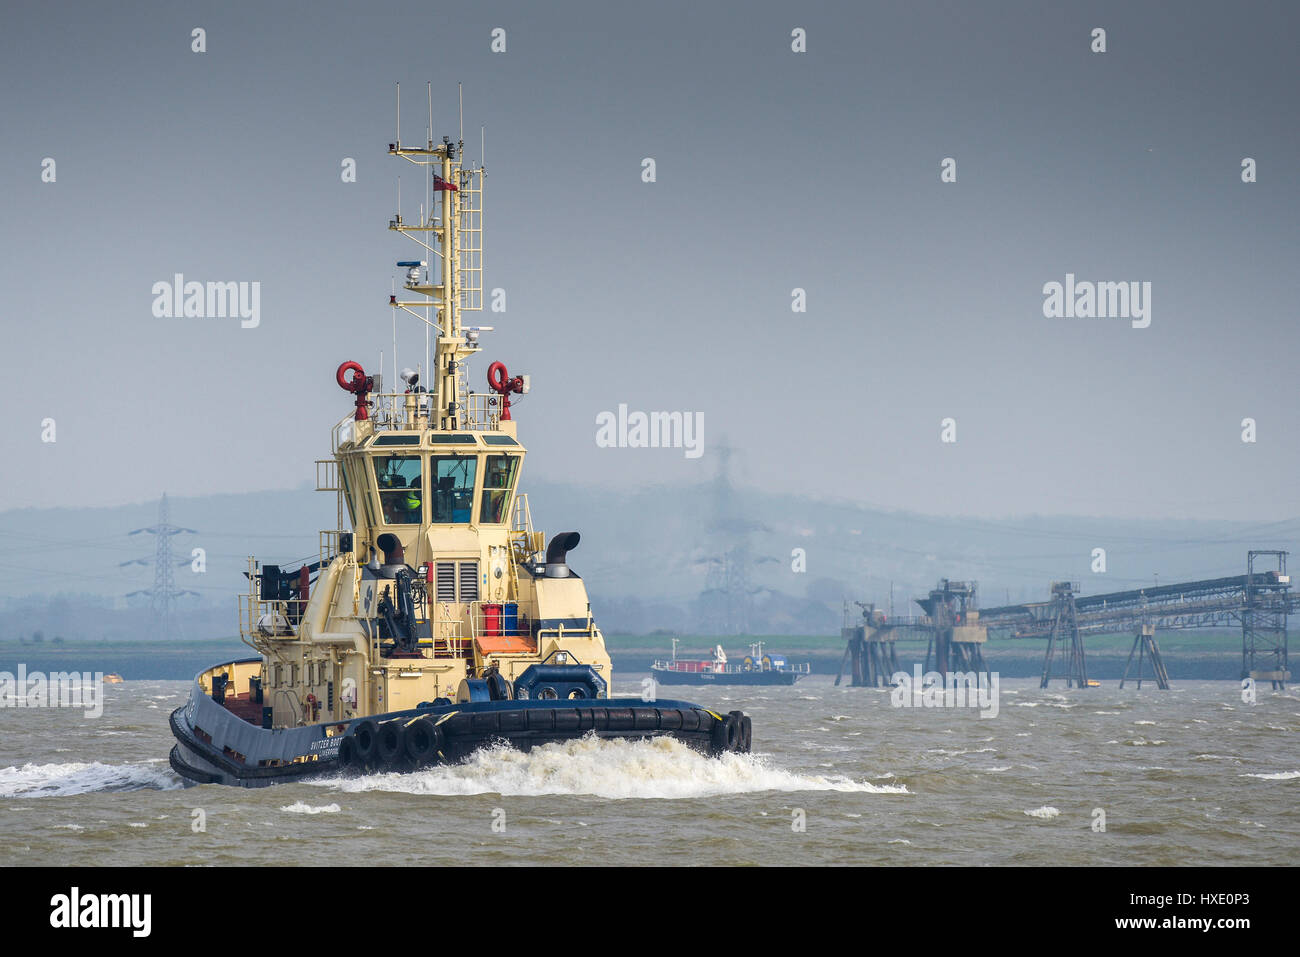 The tug Spitzer Bootle steaming sailing upriver on the River Thames in the UK. - Stock Image